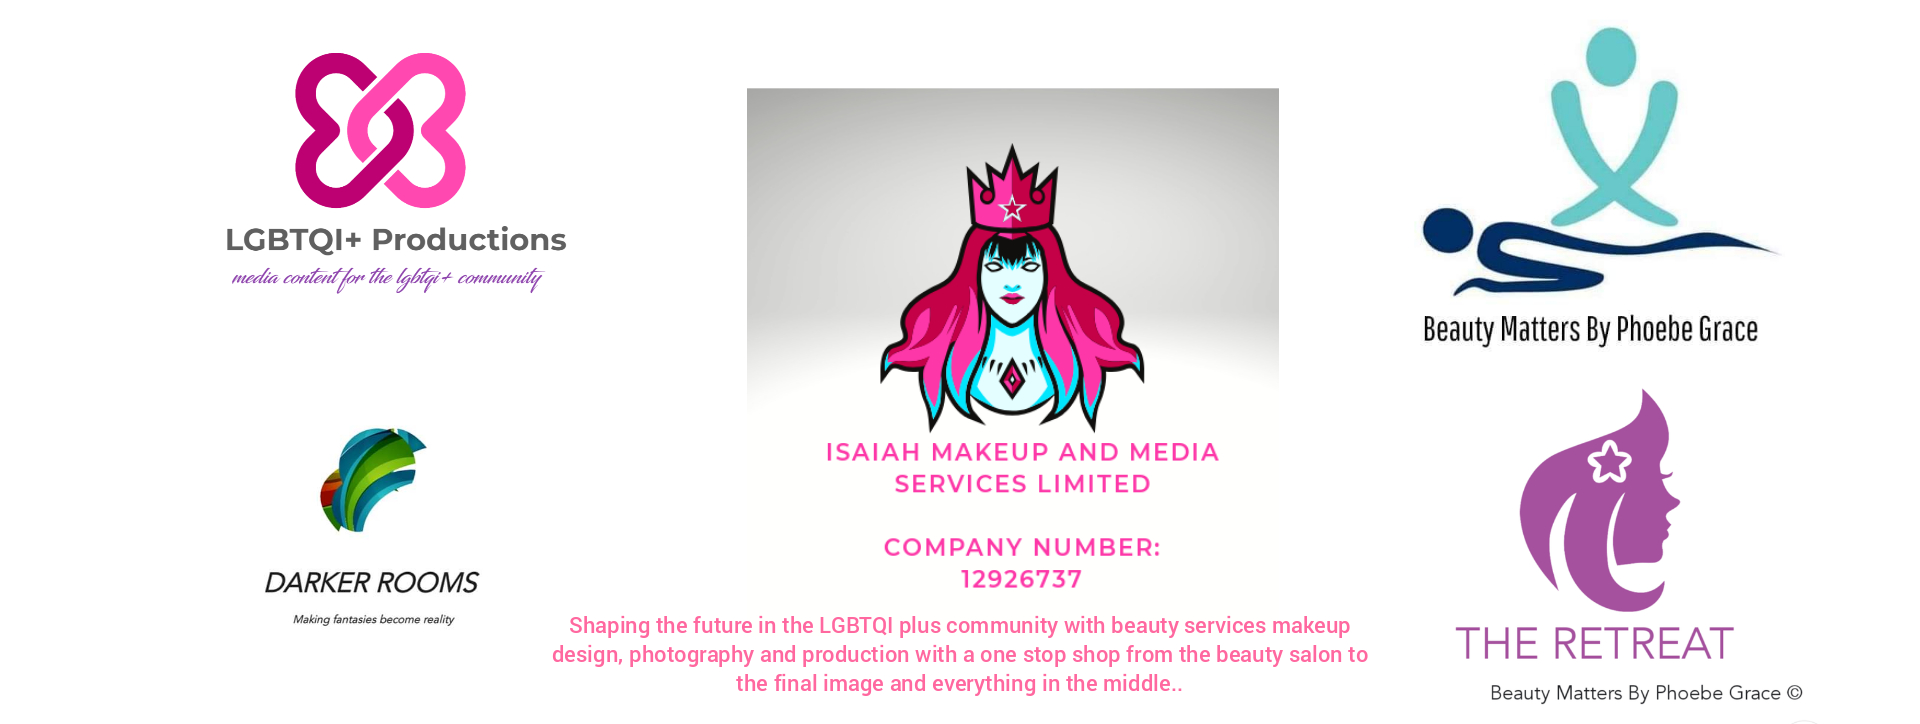 Beauty Matters By Phoebe Grace ( Isaiah make-up and media services ltd)